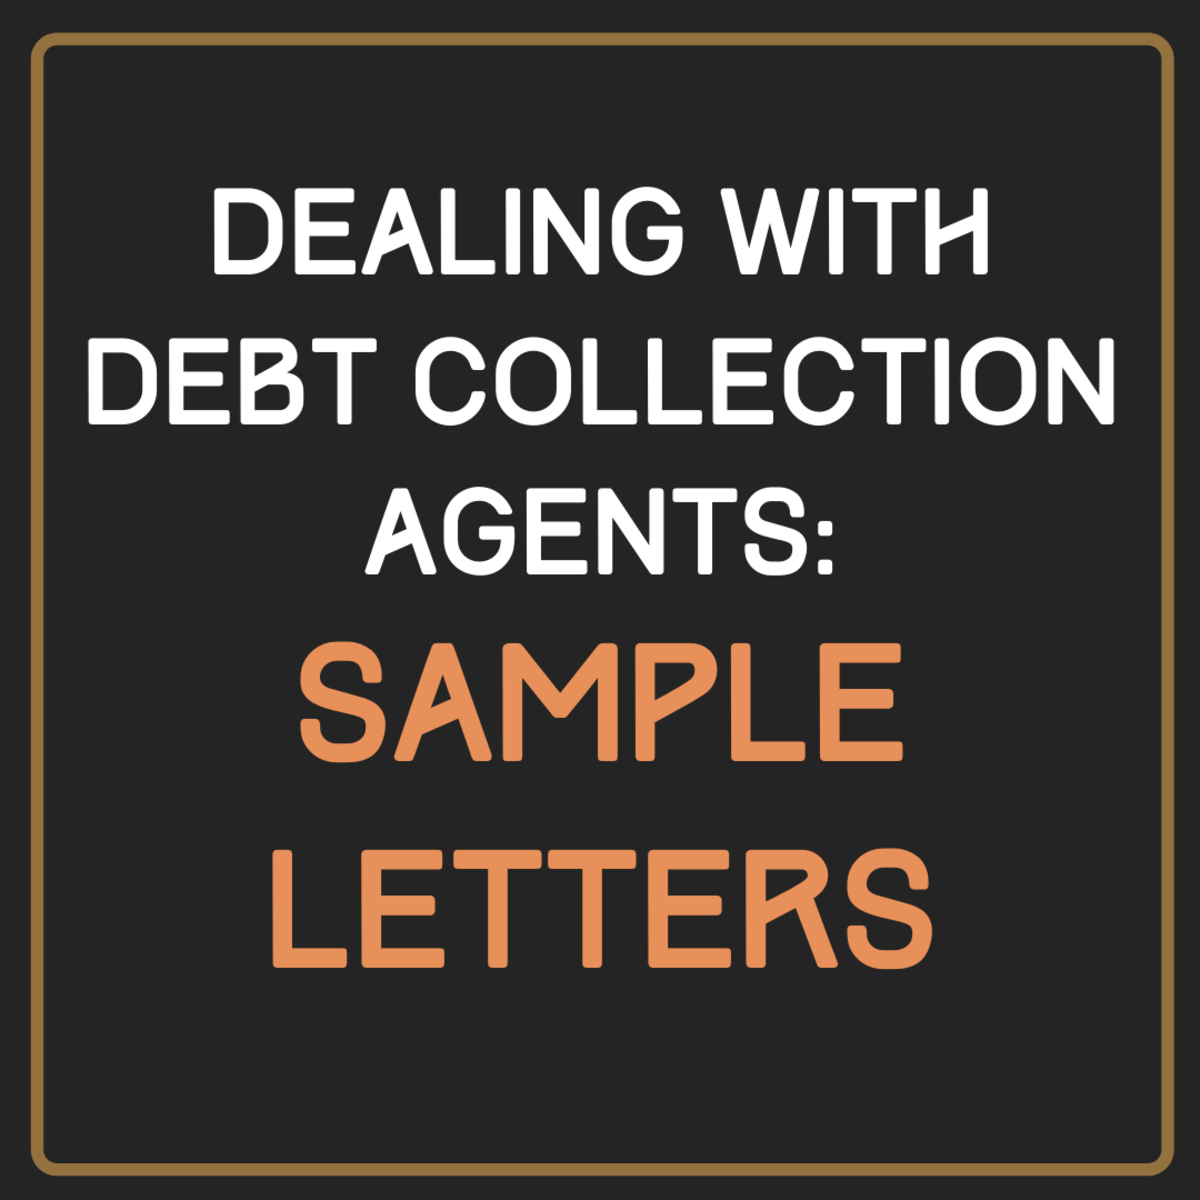 Learn how to write a letter to a debt collection agency to get them to stop contacting you.